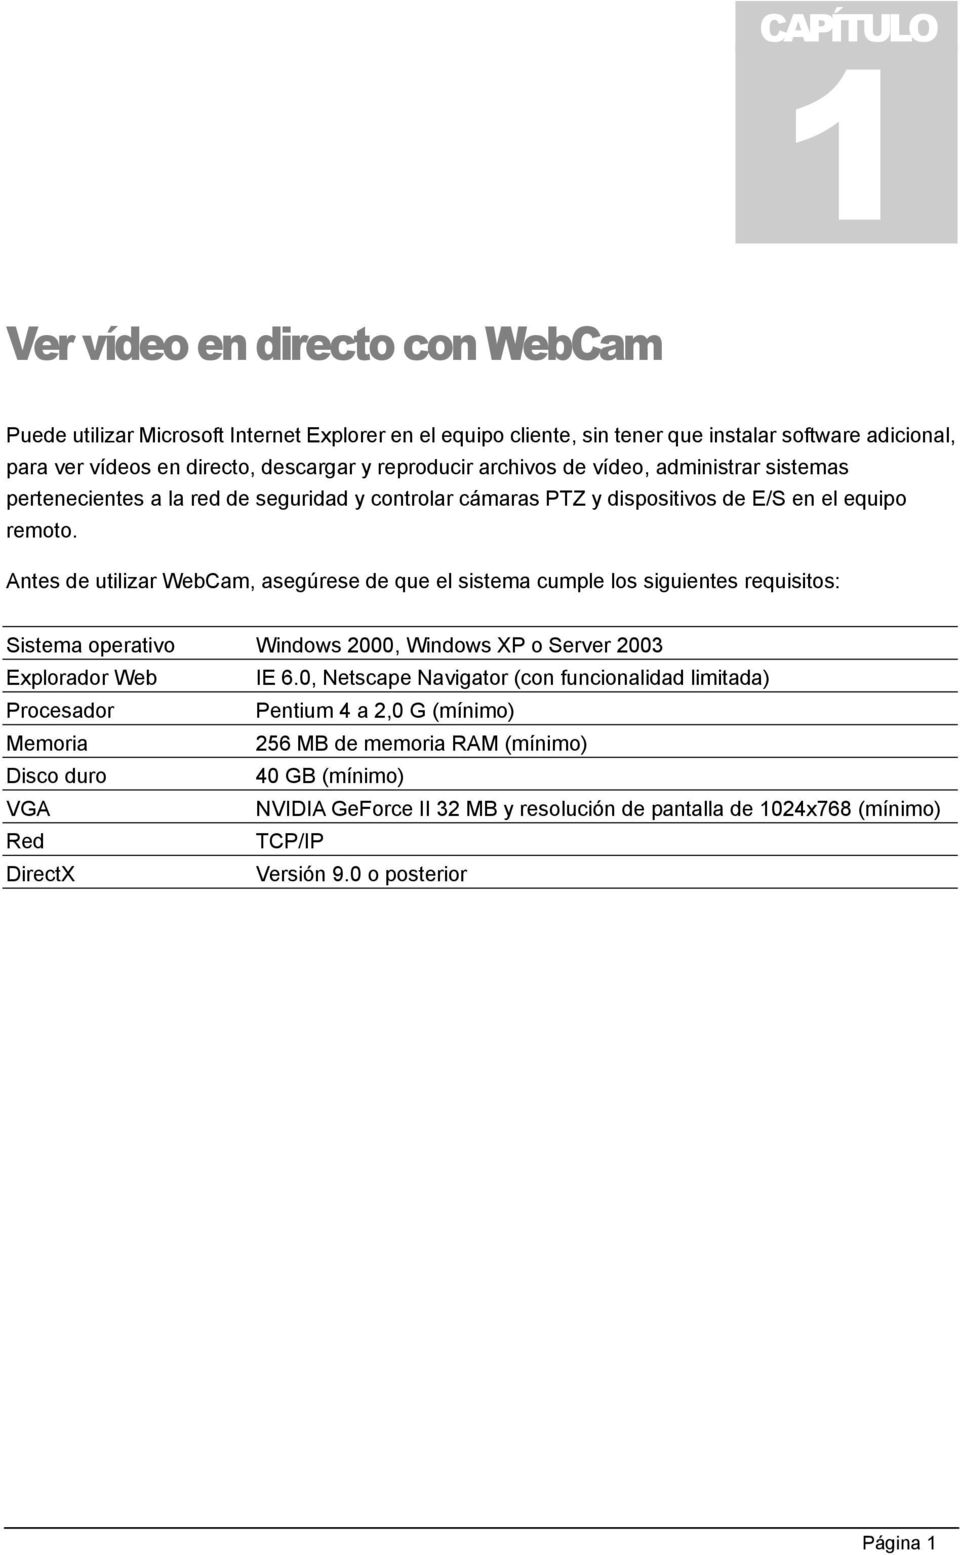 Antes de utilizar WebCam, asegúrese de que el sistema cumple los siguientes requisitos: Sistema operativo Windows 2000, Windows XP o Server 2003 Explorador Web IE 6.